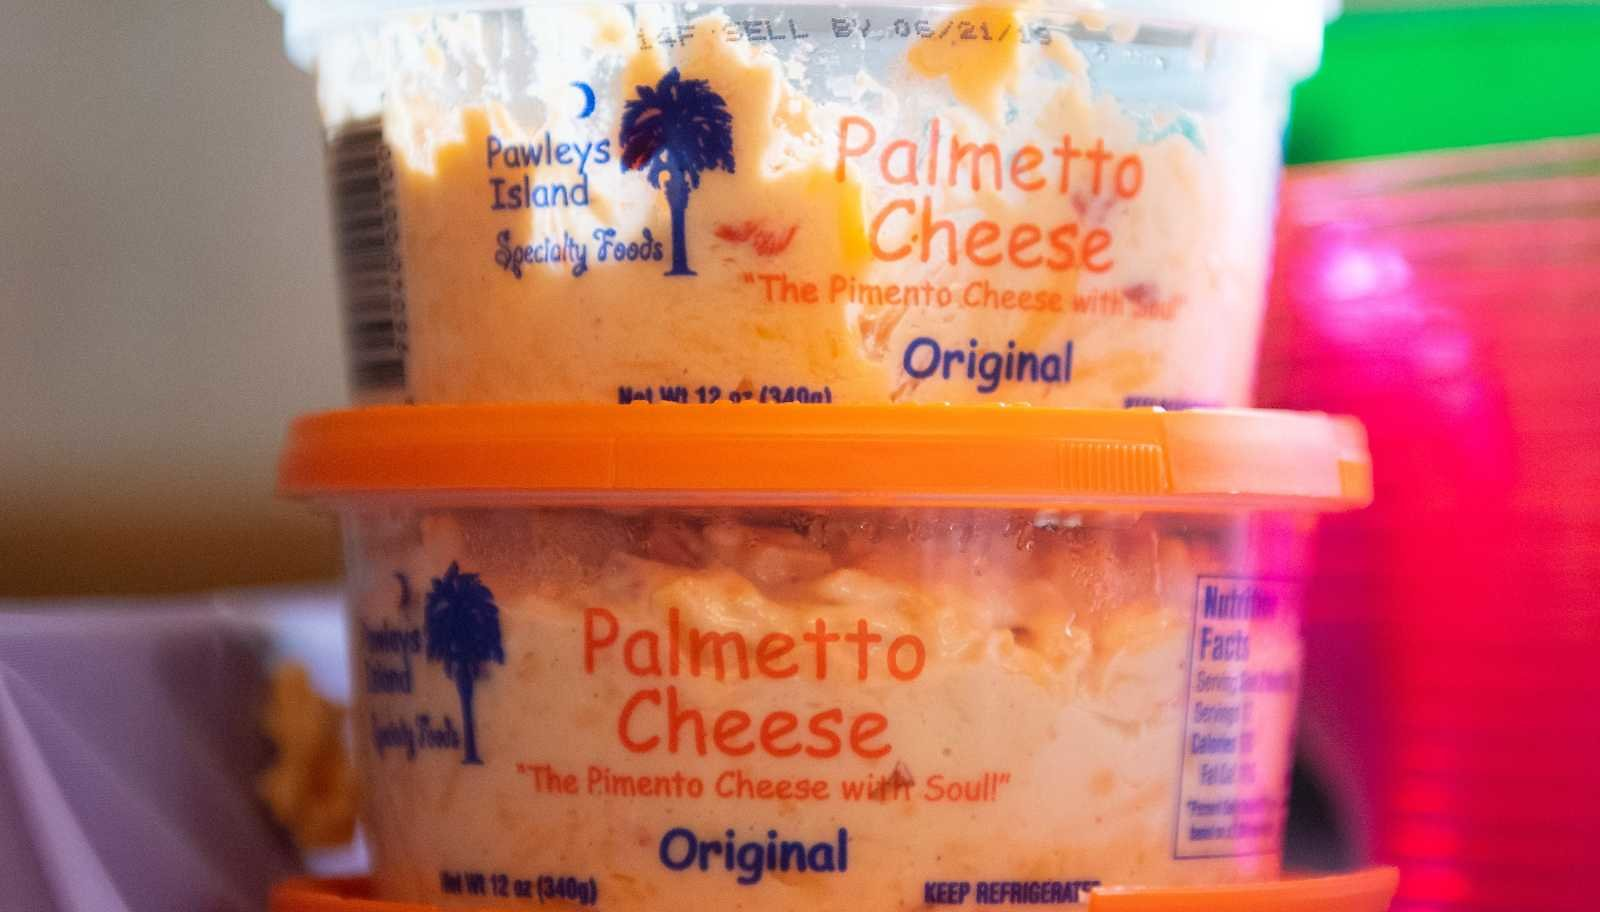 Costco Reportedly Pulls Palmetto Cheese After Founder Calls Black Lives Matter a 'terror Organization'